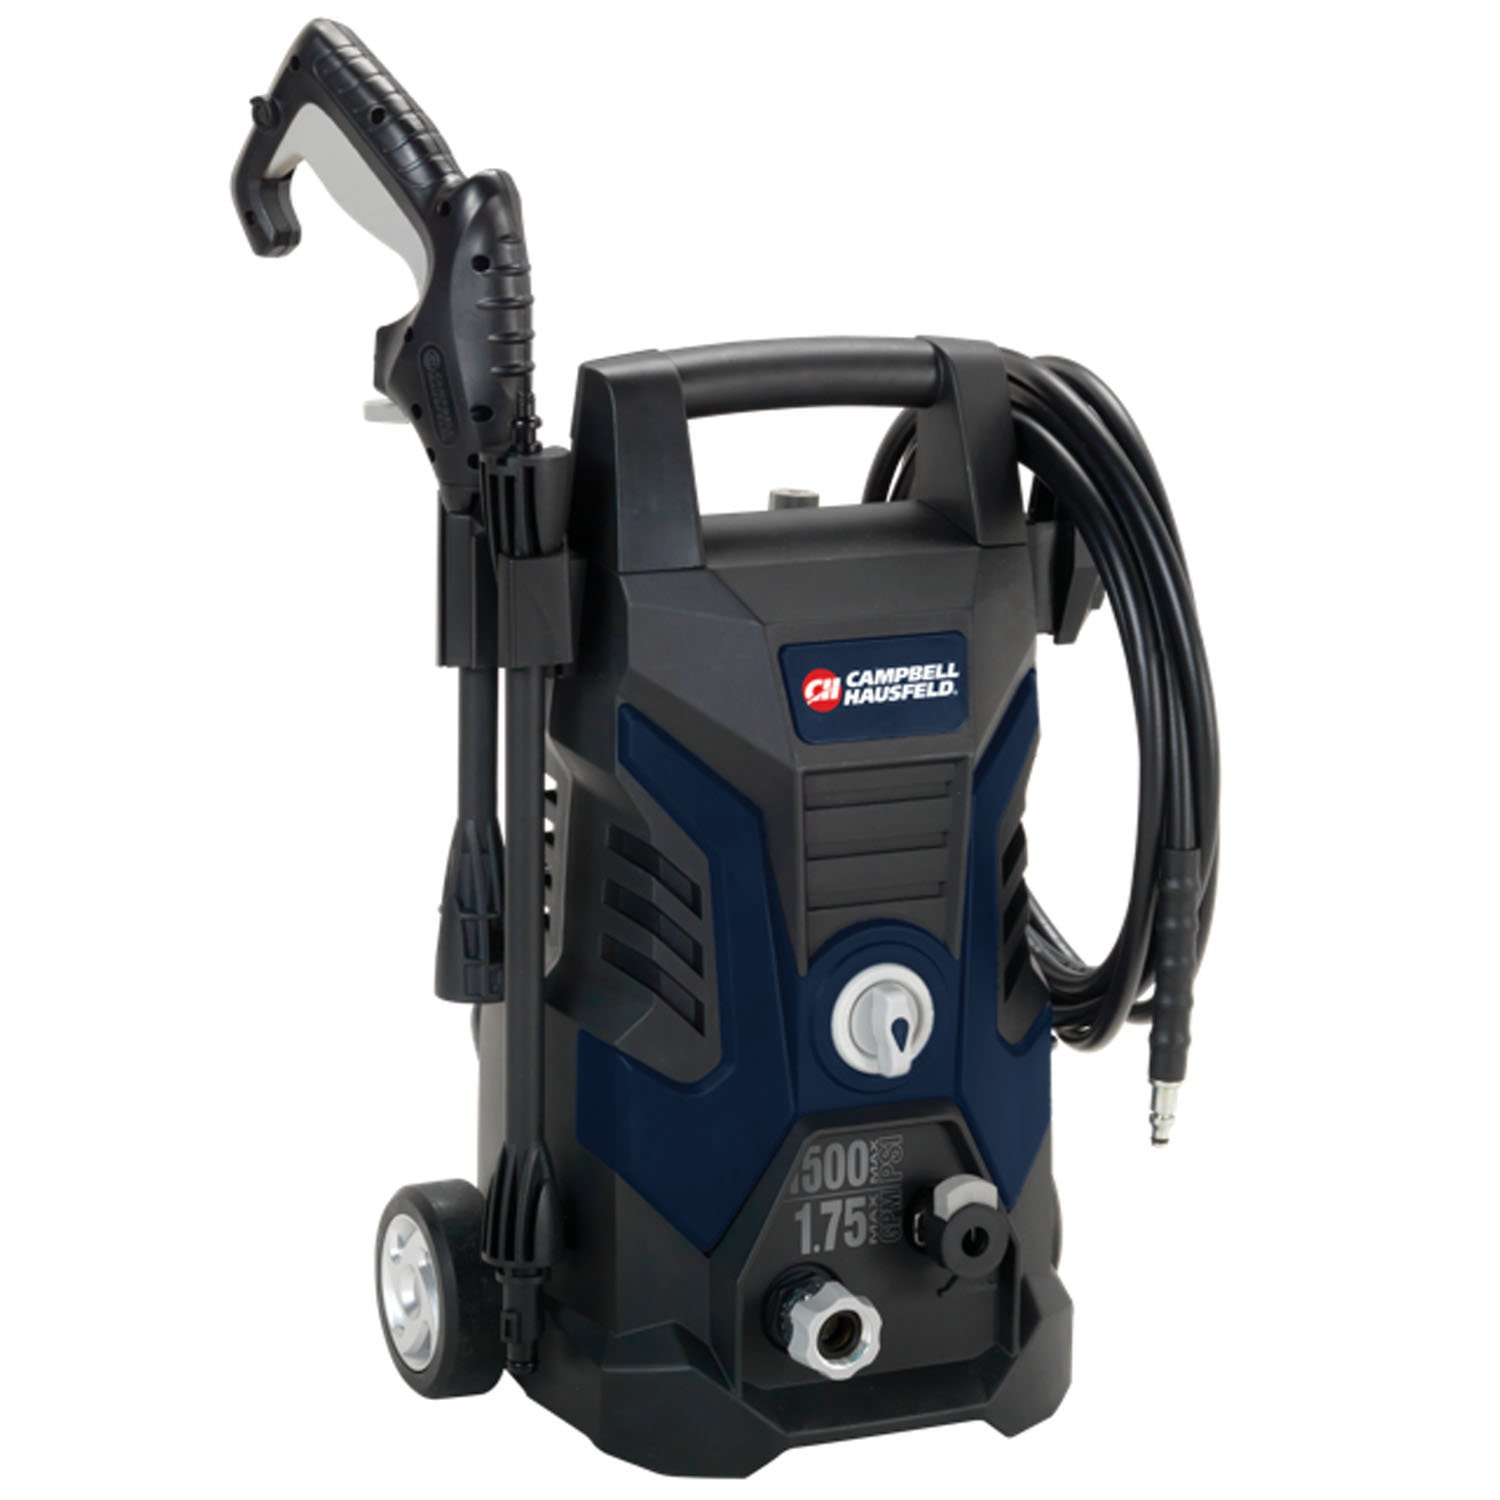 Campbell Hausfeld Pressure Washer, Electric Power Washer, 1500 Max Psi, 1.75 Max with Nozzles GPM PW150100